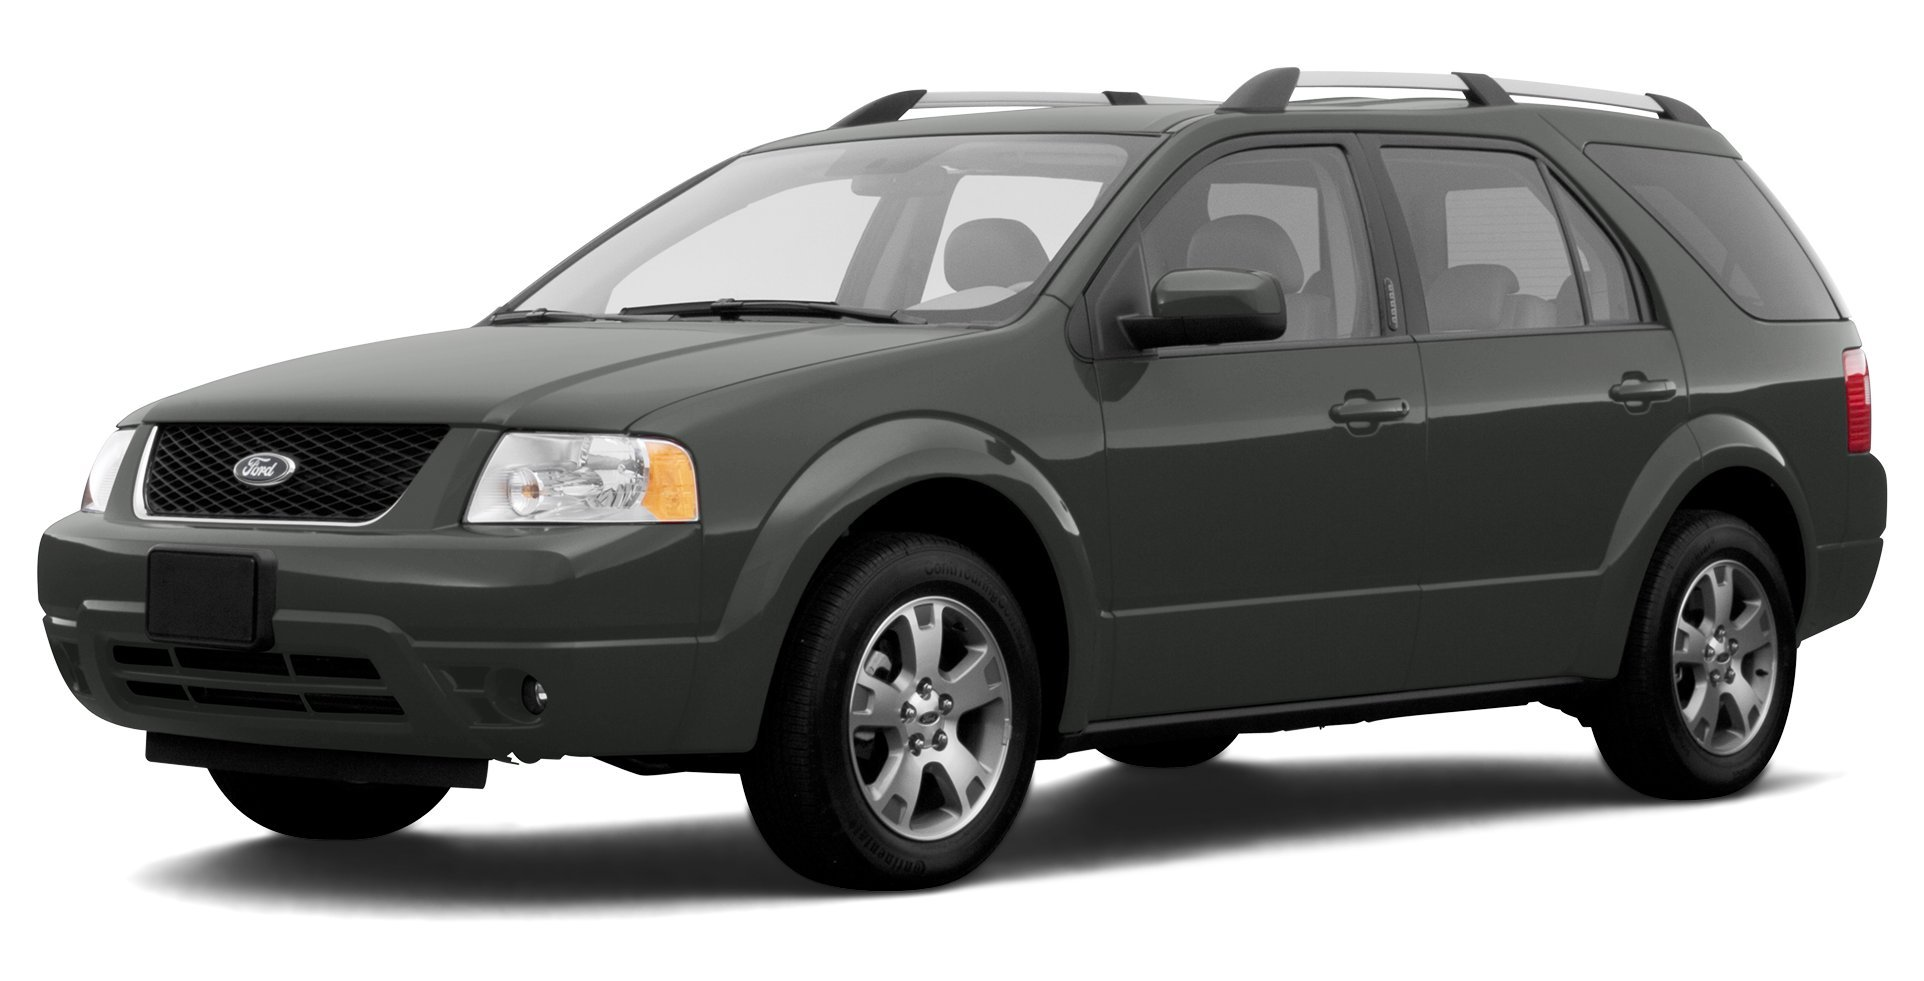 2007 Ford Freestyle Limited, 4-Door Wagon All Wheel Drive ...